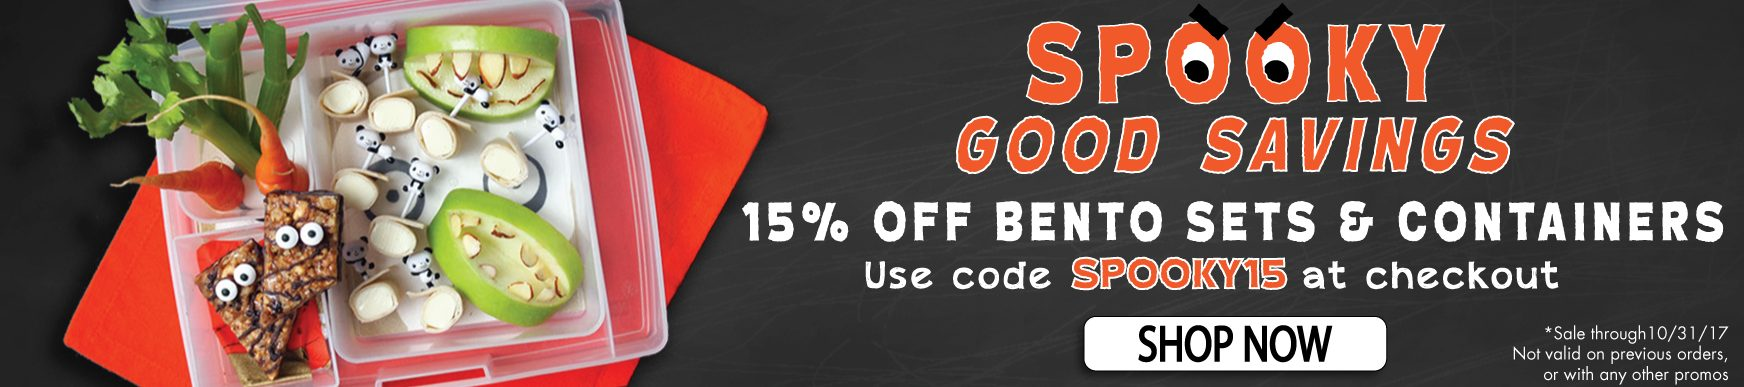 Spooky good savings on Bento Lunch Boxes and Container Sets!